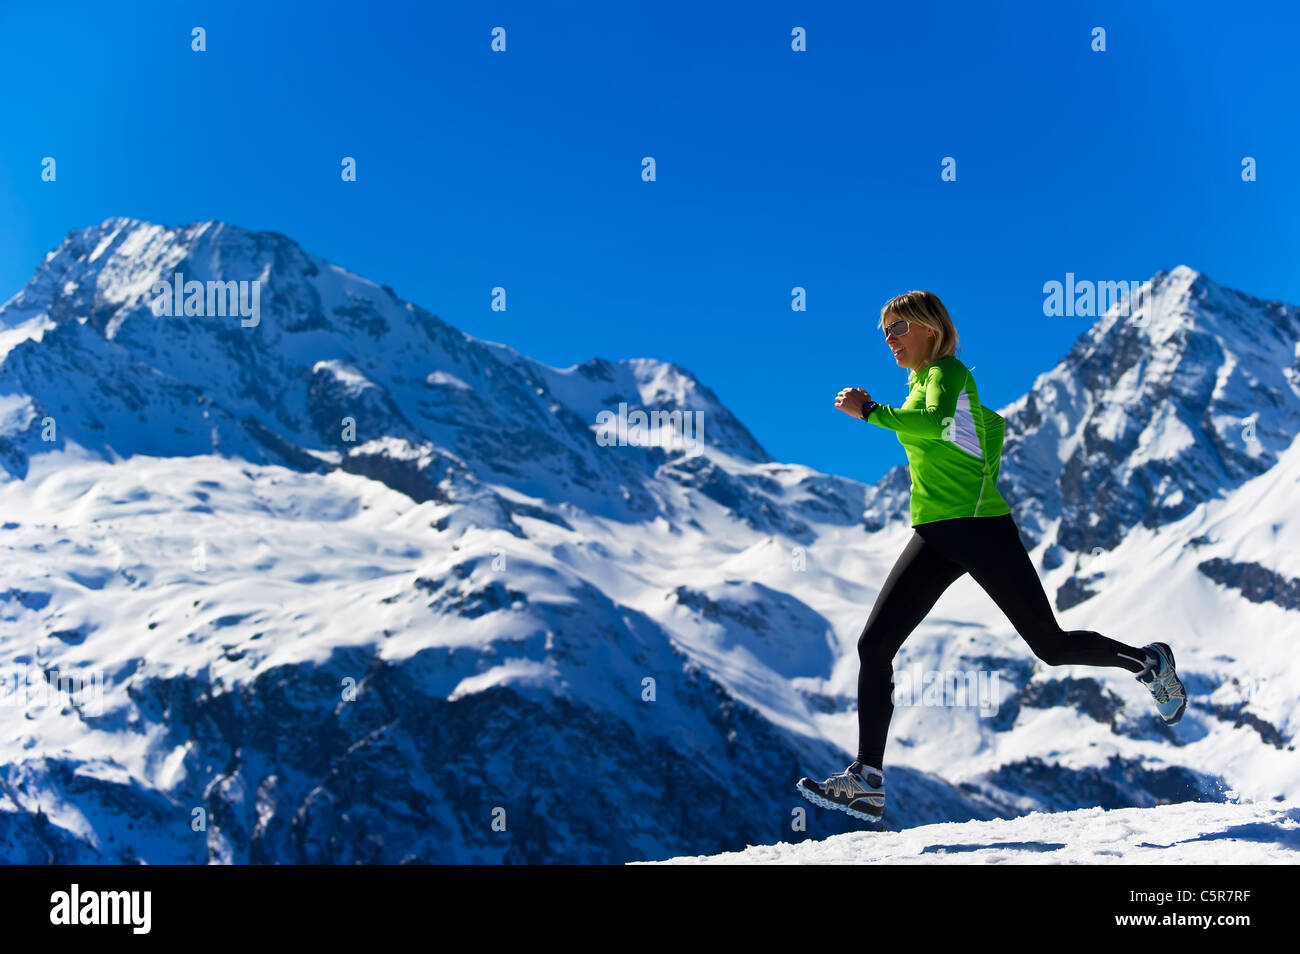 A women jogging across snowy alpine mountains. - Stock Image